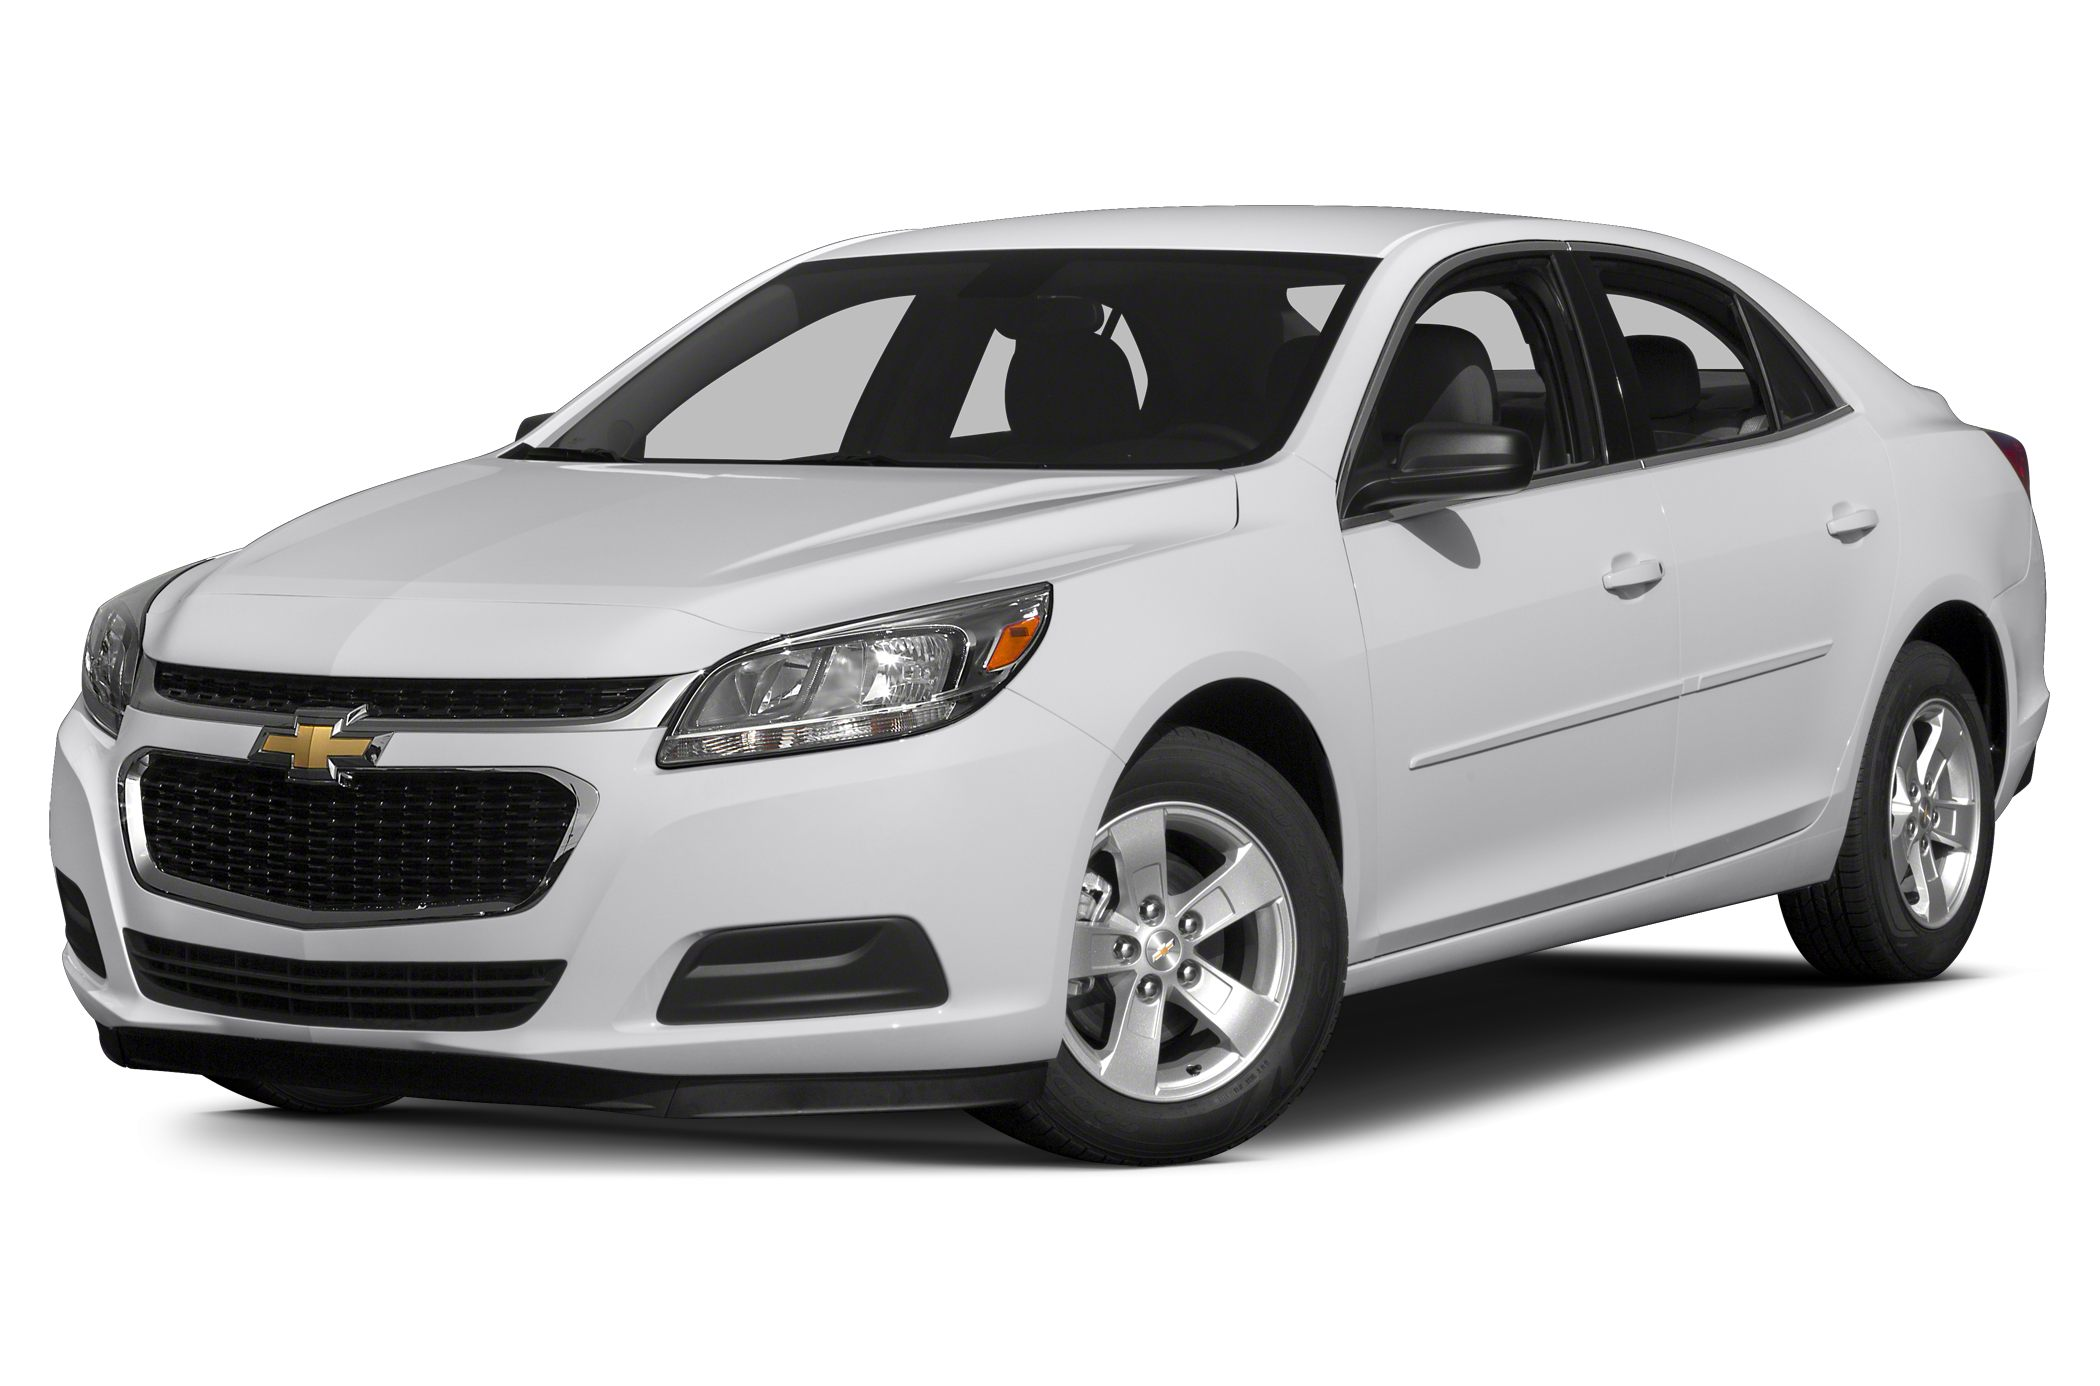 2015 Chevrolet Malibu 1LT Sedan for sale in Eden for $26,100 with 0 miles.